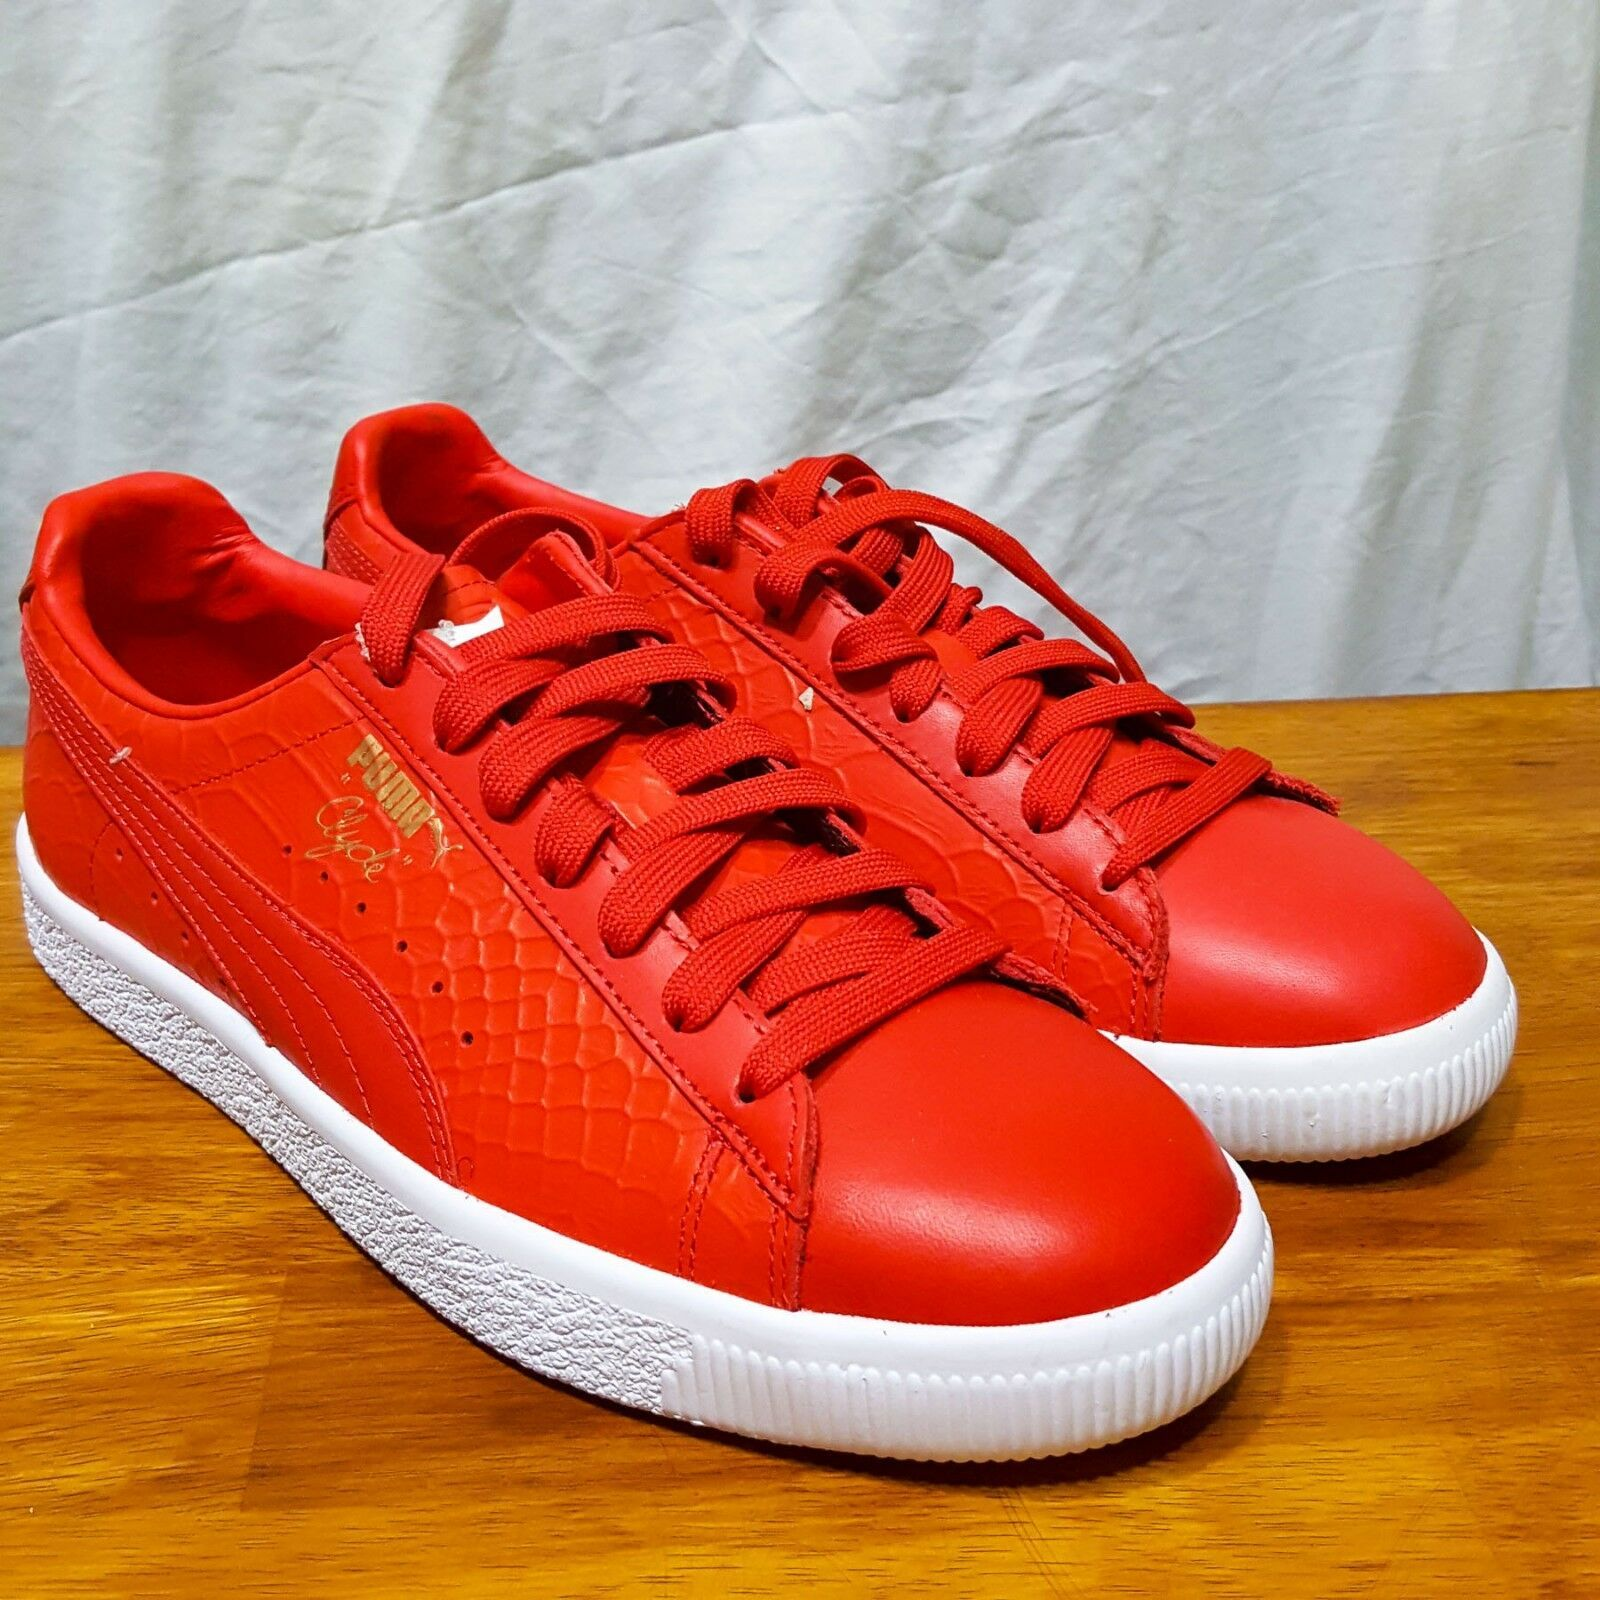 PUMA Clyde Dressed Snakeskin Red 361704-03 sz 8.5 Animal Pack Croc Premium